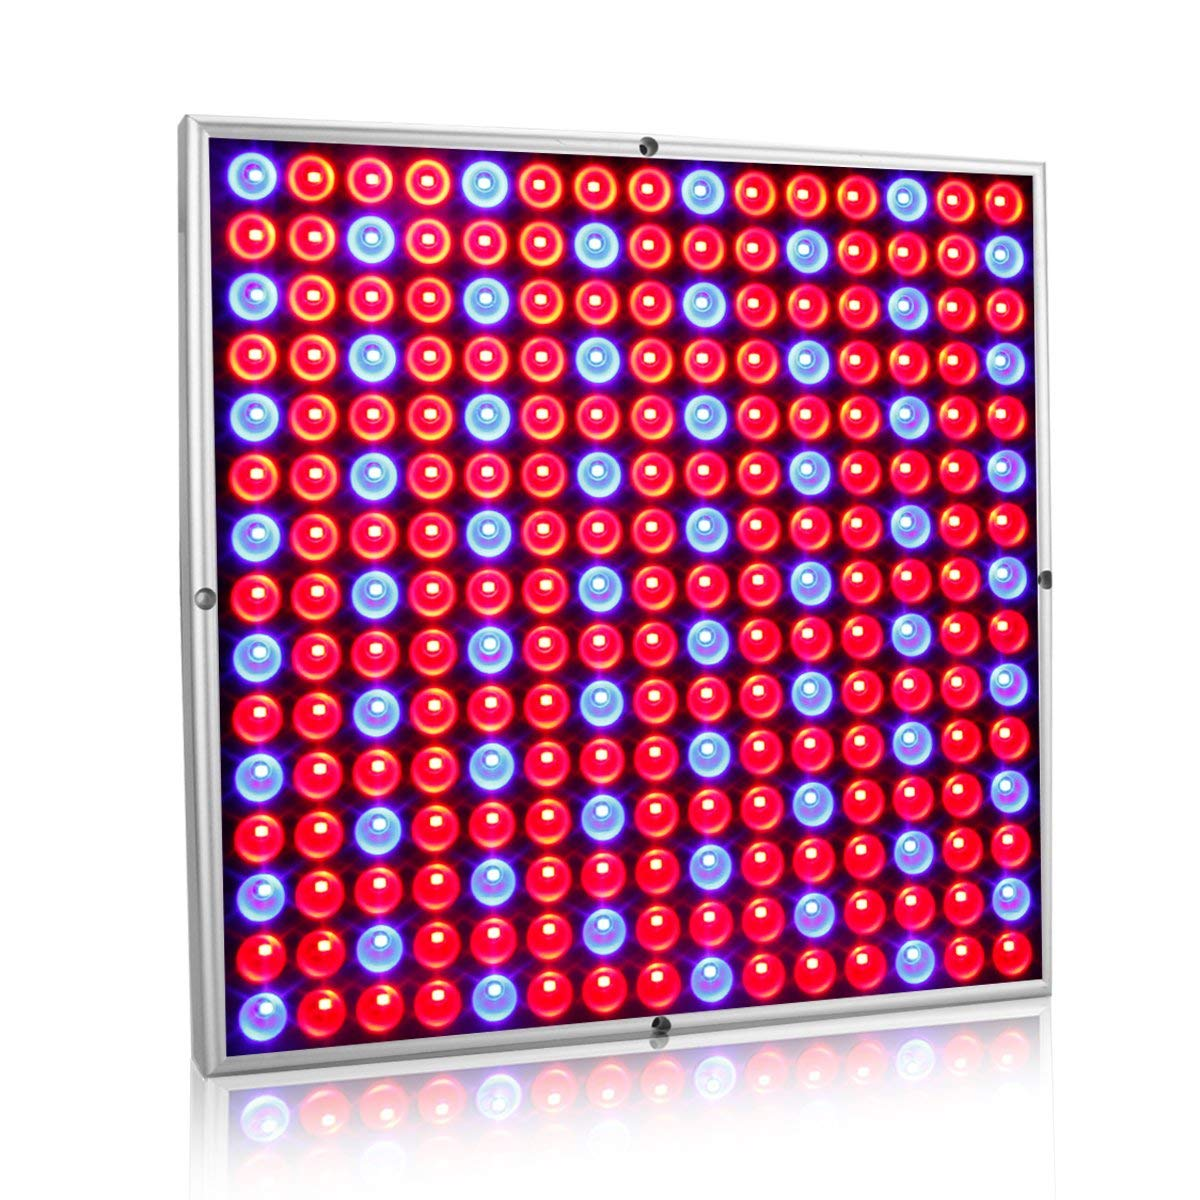 Exmate 45W LED Grow Light for Indoor Plants Growing Lamp 225 LEDs Red Blue Plant Lights Bulb Panel for Greenhouse Tent Indoor Succulent Plants Seedlings Flowering Veg Bloom Hydroponic Garden Sliver